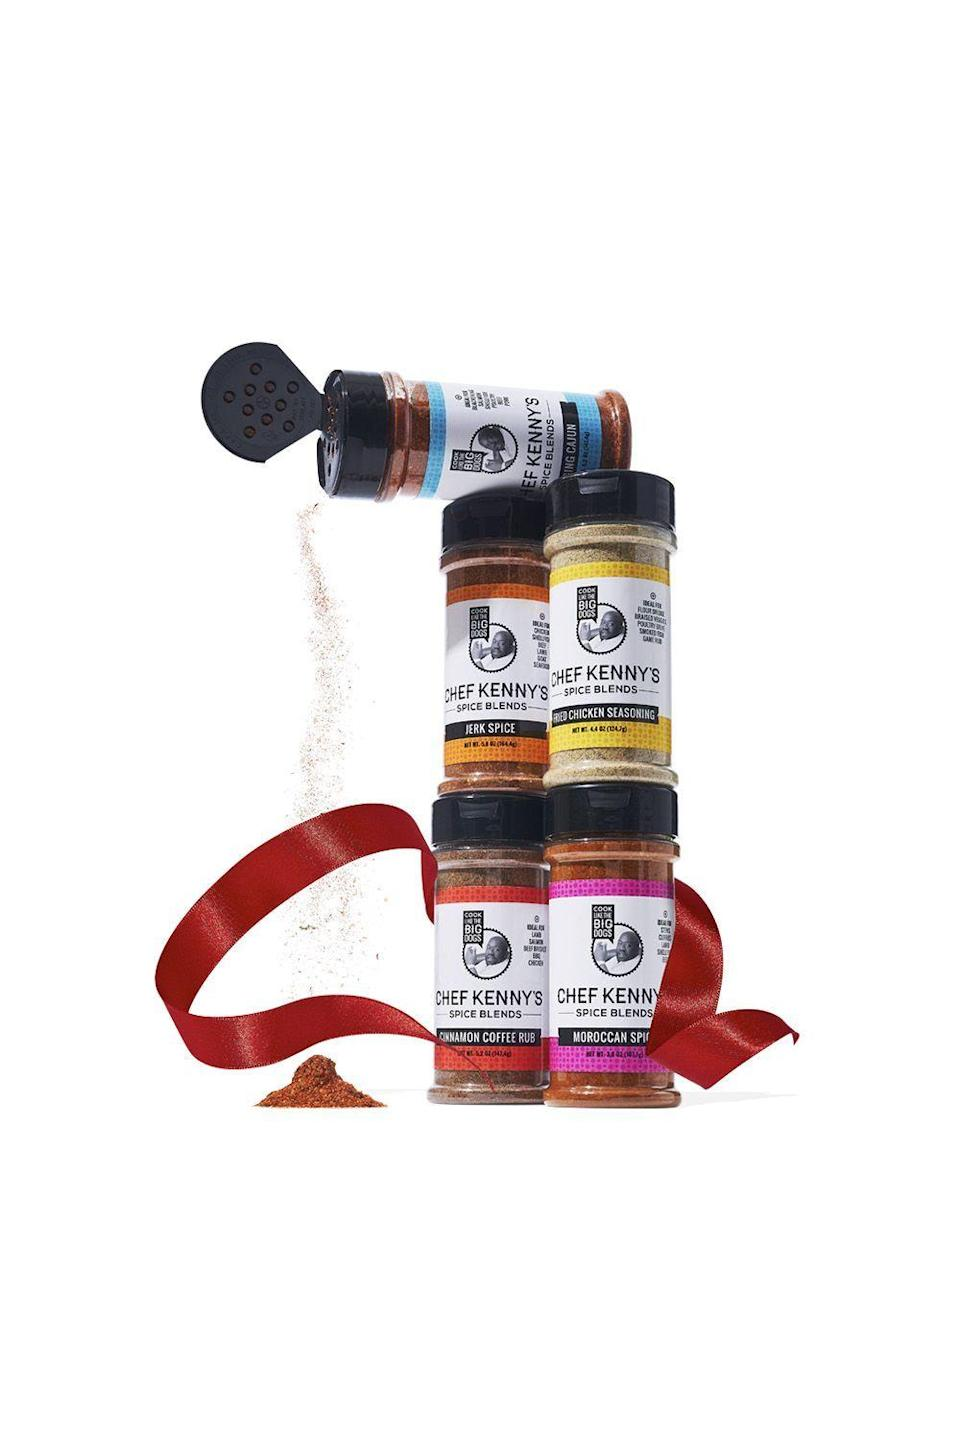 """<p><strong>Chef Kenny's Spice Blends</strong></p><p>amazon.com</p><p><strong>$39.99</strong></p><p><a href=""""https://www.amazon.com/dp/B08KJQ6R7F?tag=syn-yahoo-20&ascsubtag=%5Bartid%7C10070.g.34635986%5Bsrc%7Cyahoo-us"""" rel=""""nofollow noopener"""" target=""""_blank"""" data-ylk=""""slk:SHOP NOW"""" class=""""link rapid-noclick-resp"""">SHOP NOW</a></p><p>Most cooking starts before the ingredients even hit the pan, and the best home chefs always keep expertly blended seasonings stocked in their culinary arsenal. These rubs are the secret flavor bomb to instantly elevate your steaks, roasts, and chops. Oprah says the fried-chicken seasoning should be declared a national treasure. Count us in!</p>"""